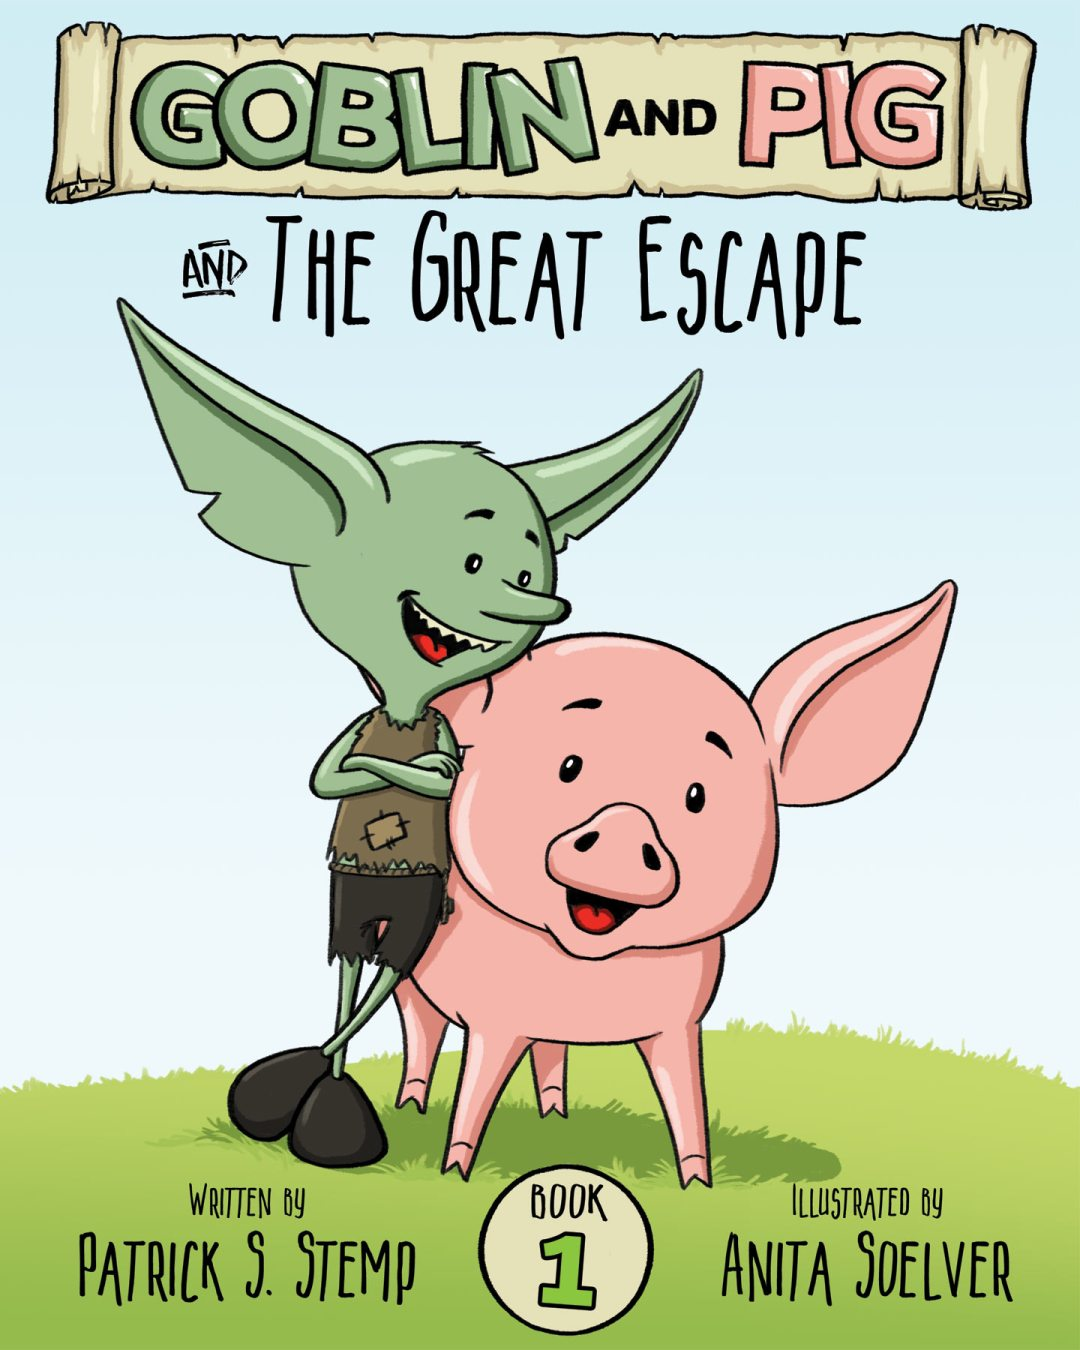 The Great Escape (Goblin and Pig #1) | A children's book by Patrick S. Stemp & Anita Soelver